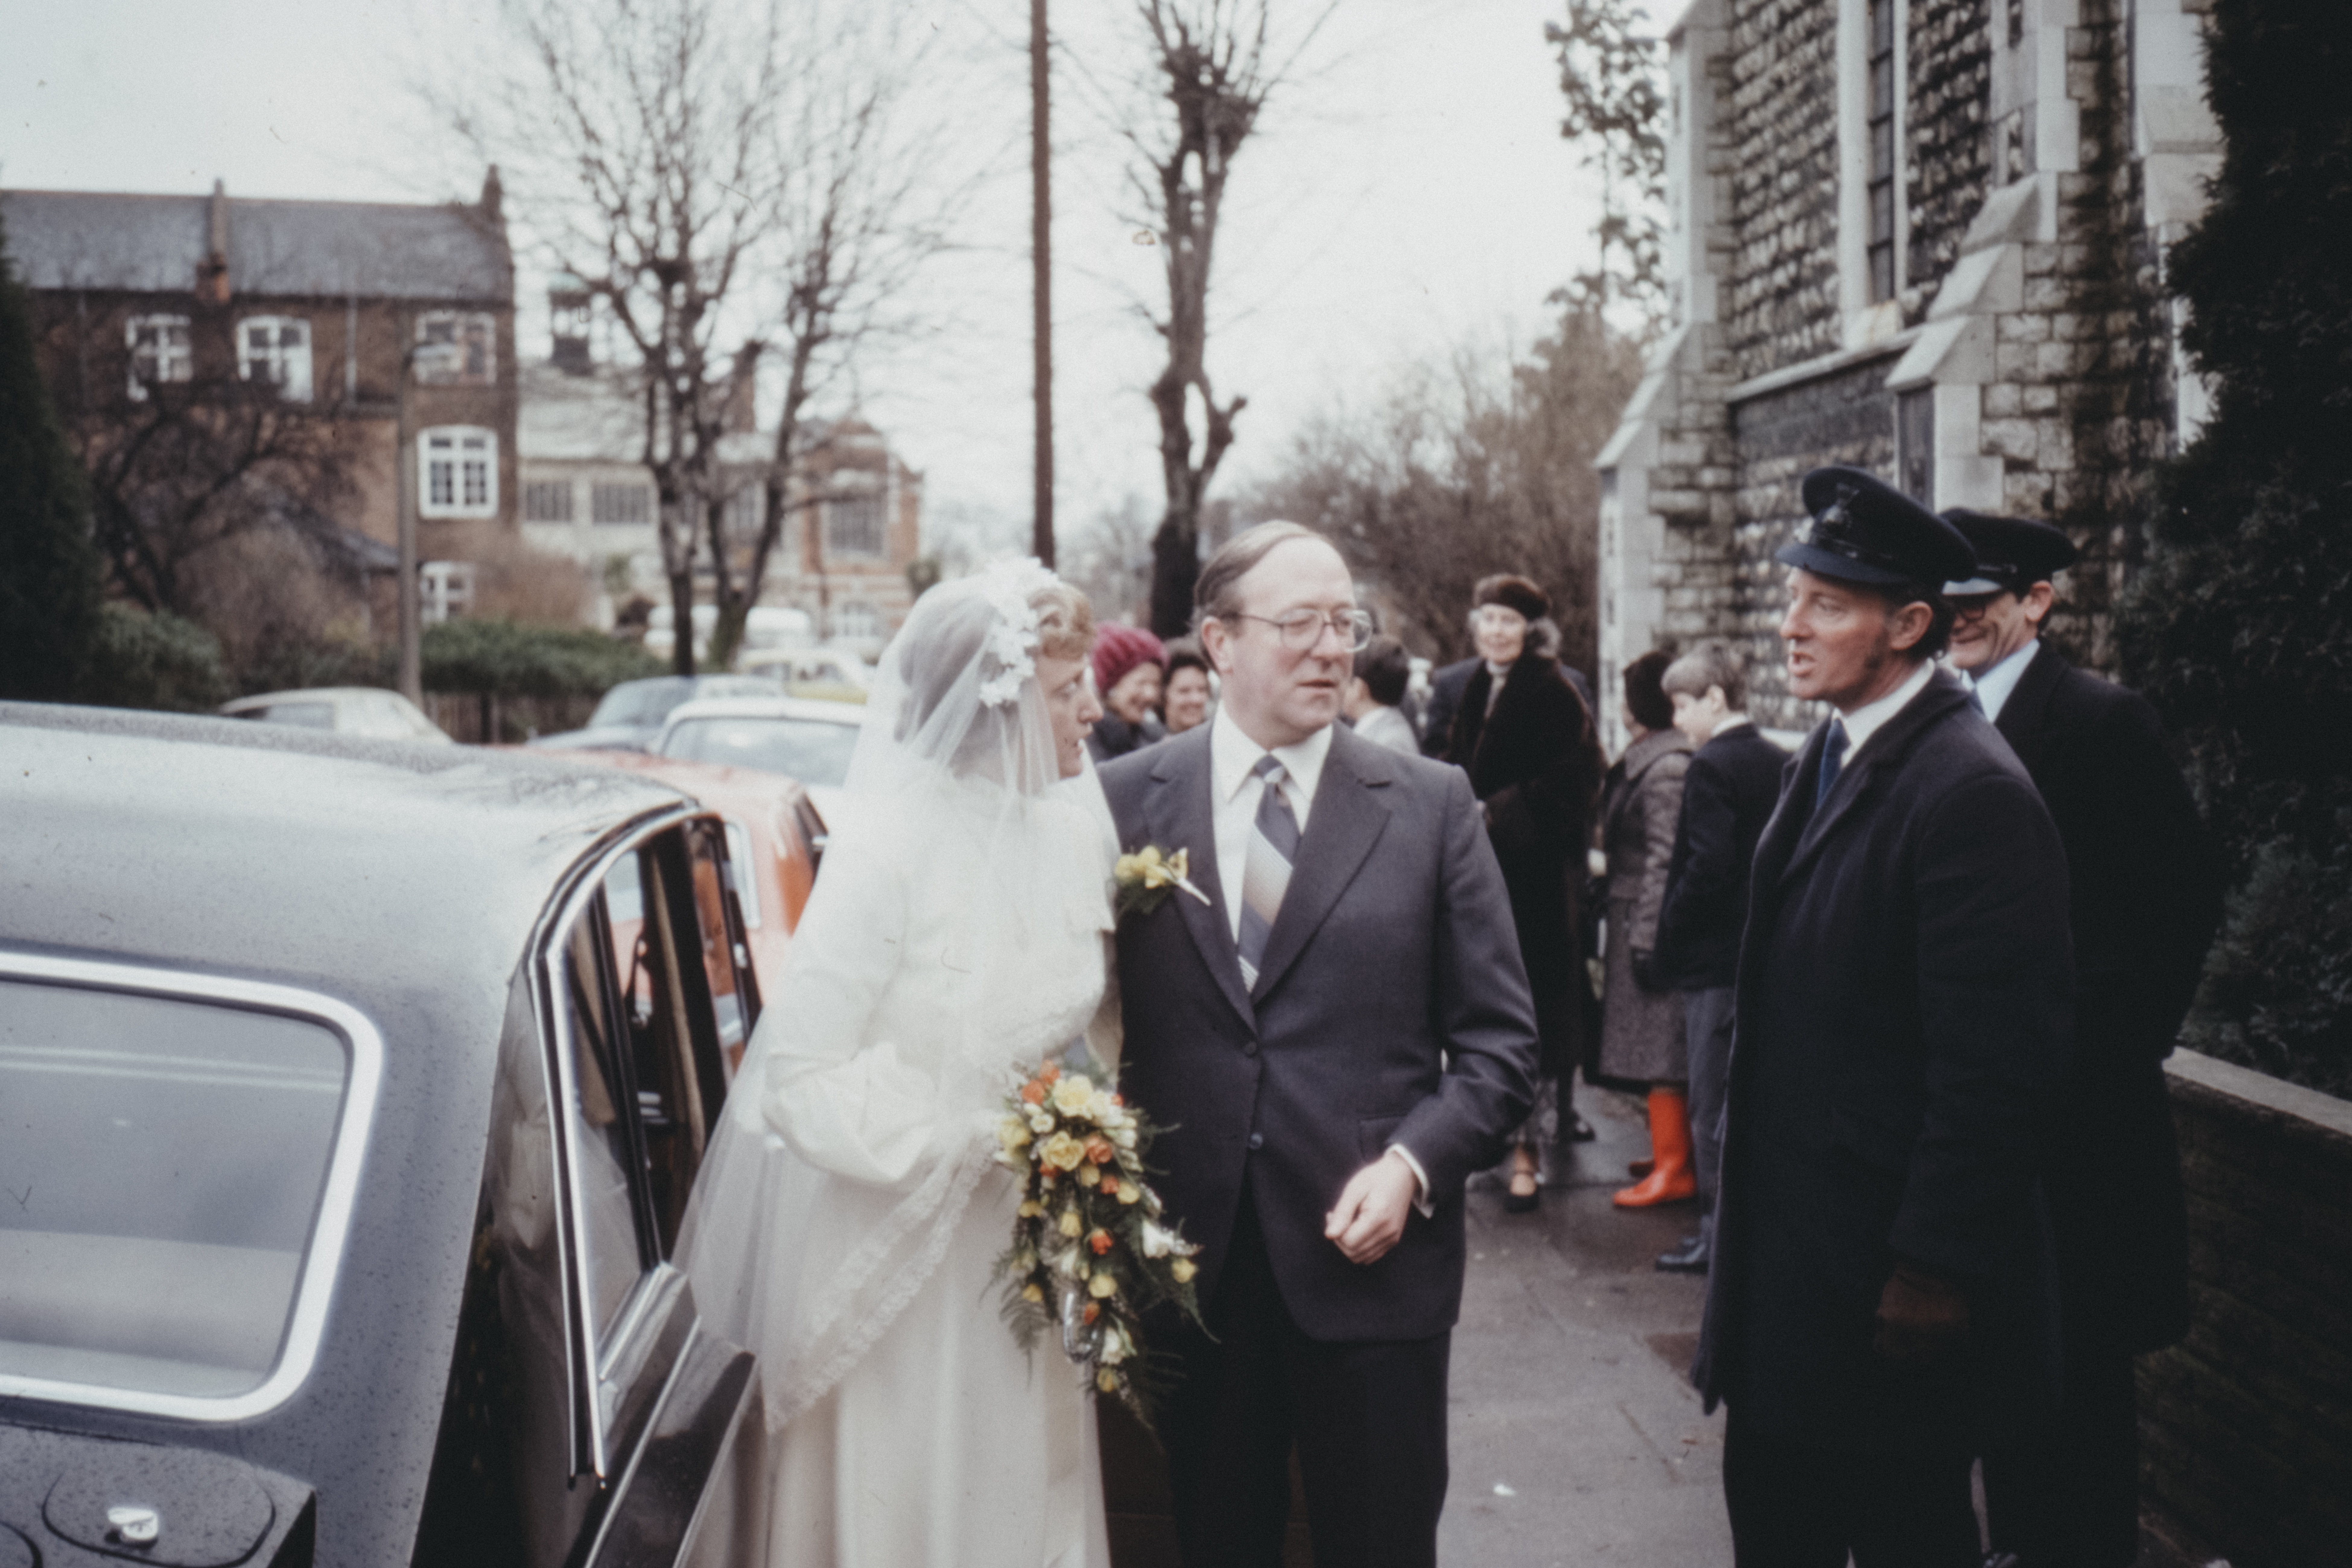 Wedding - 1970s film photo